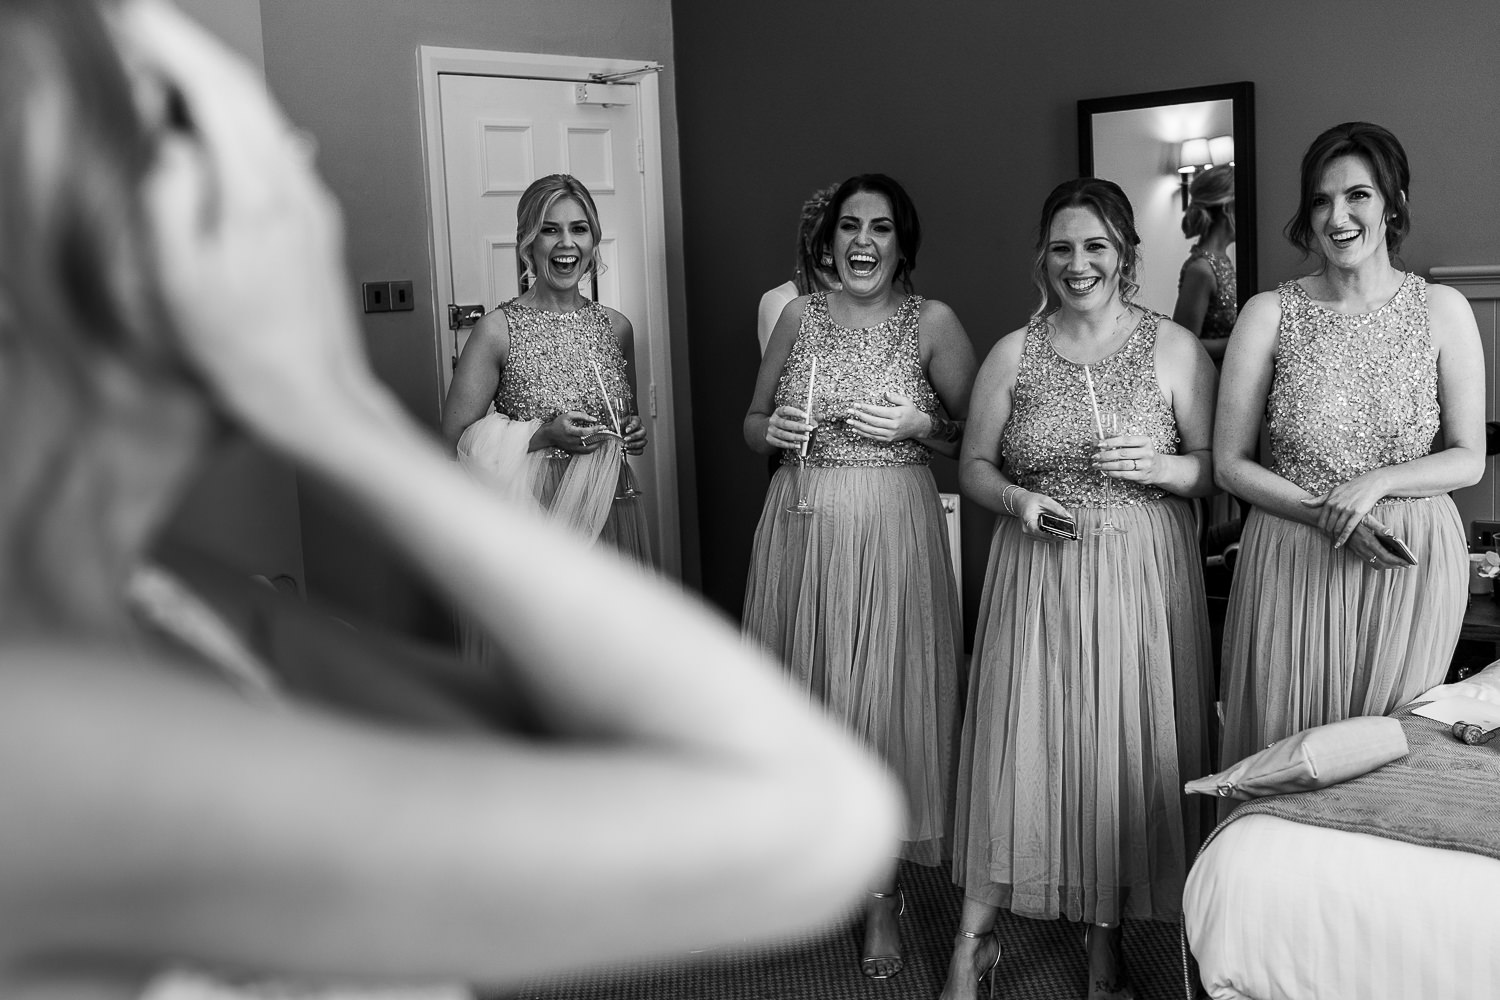 Bride crying with her bridesmaids laughing in the background